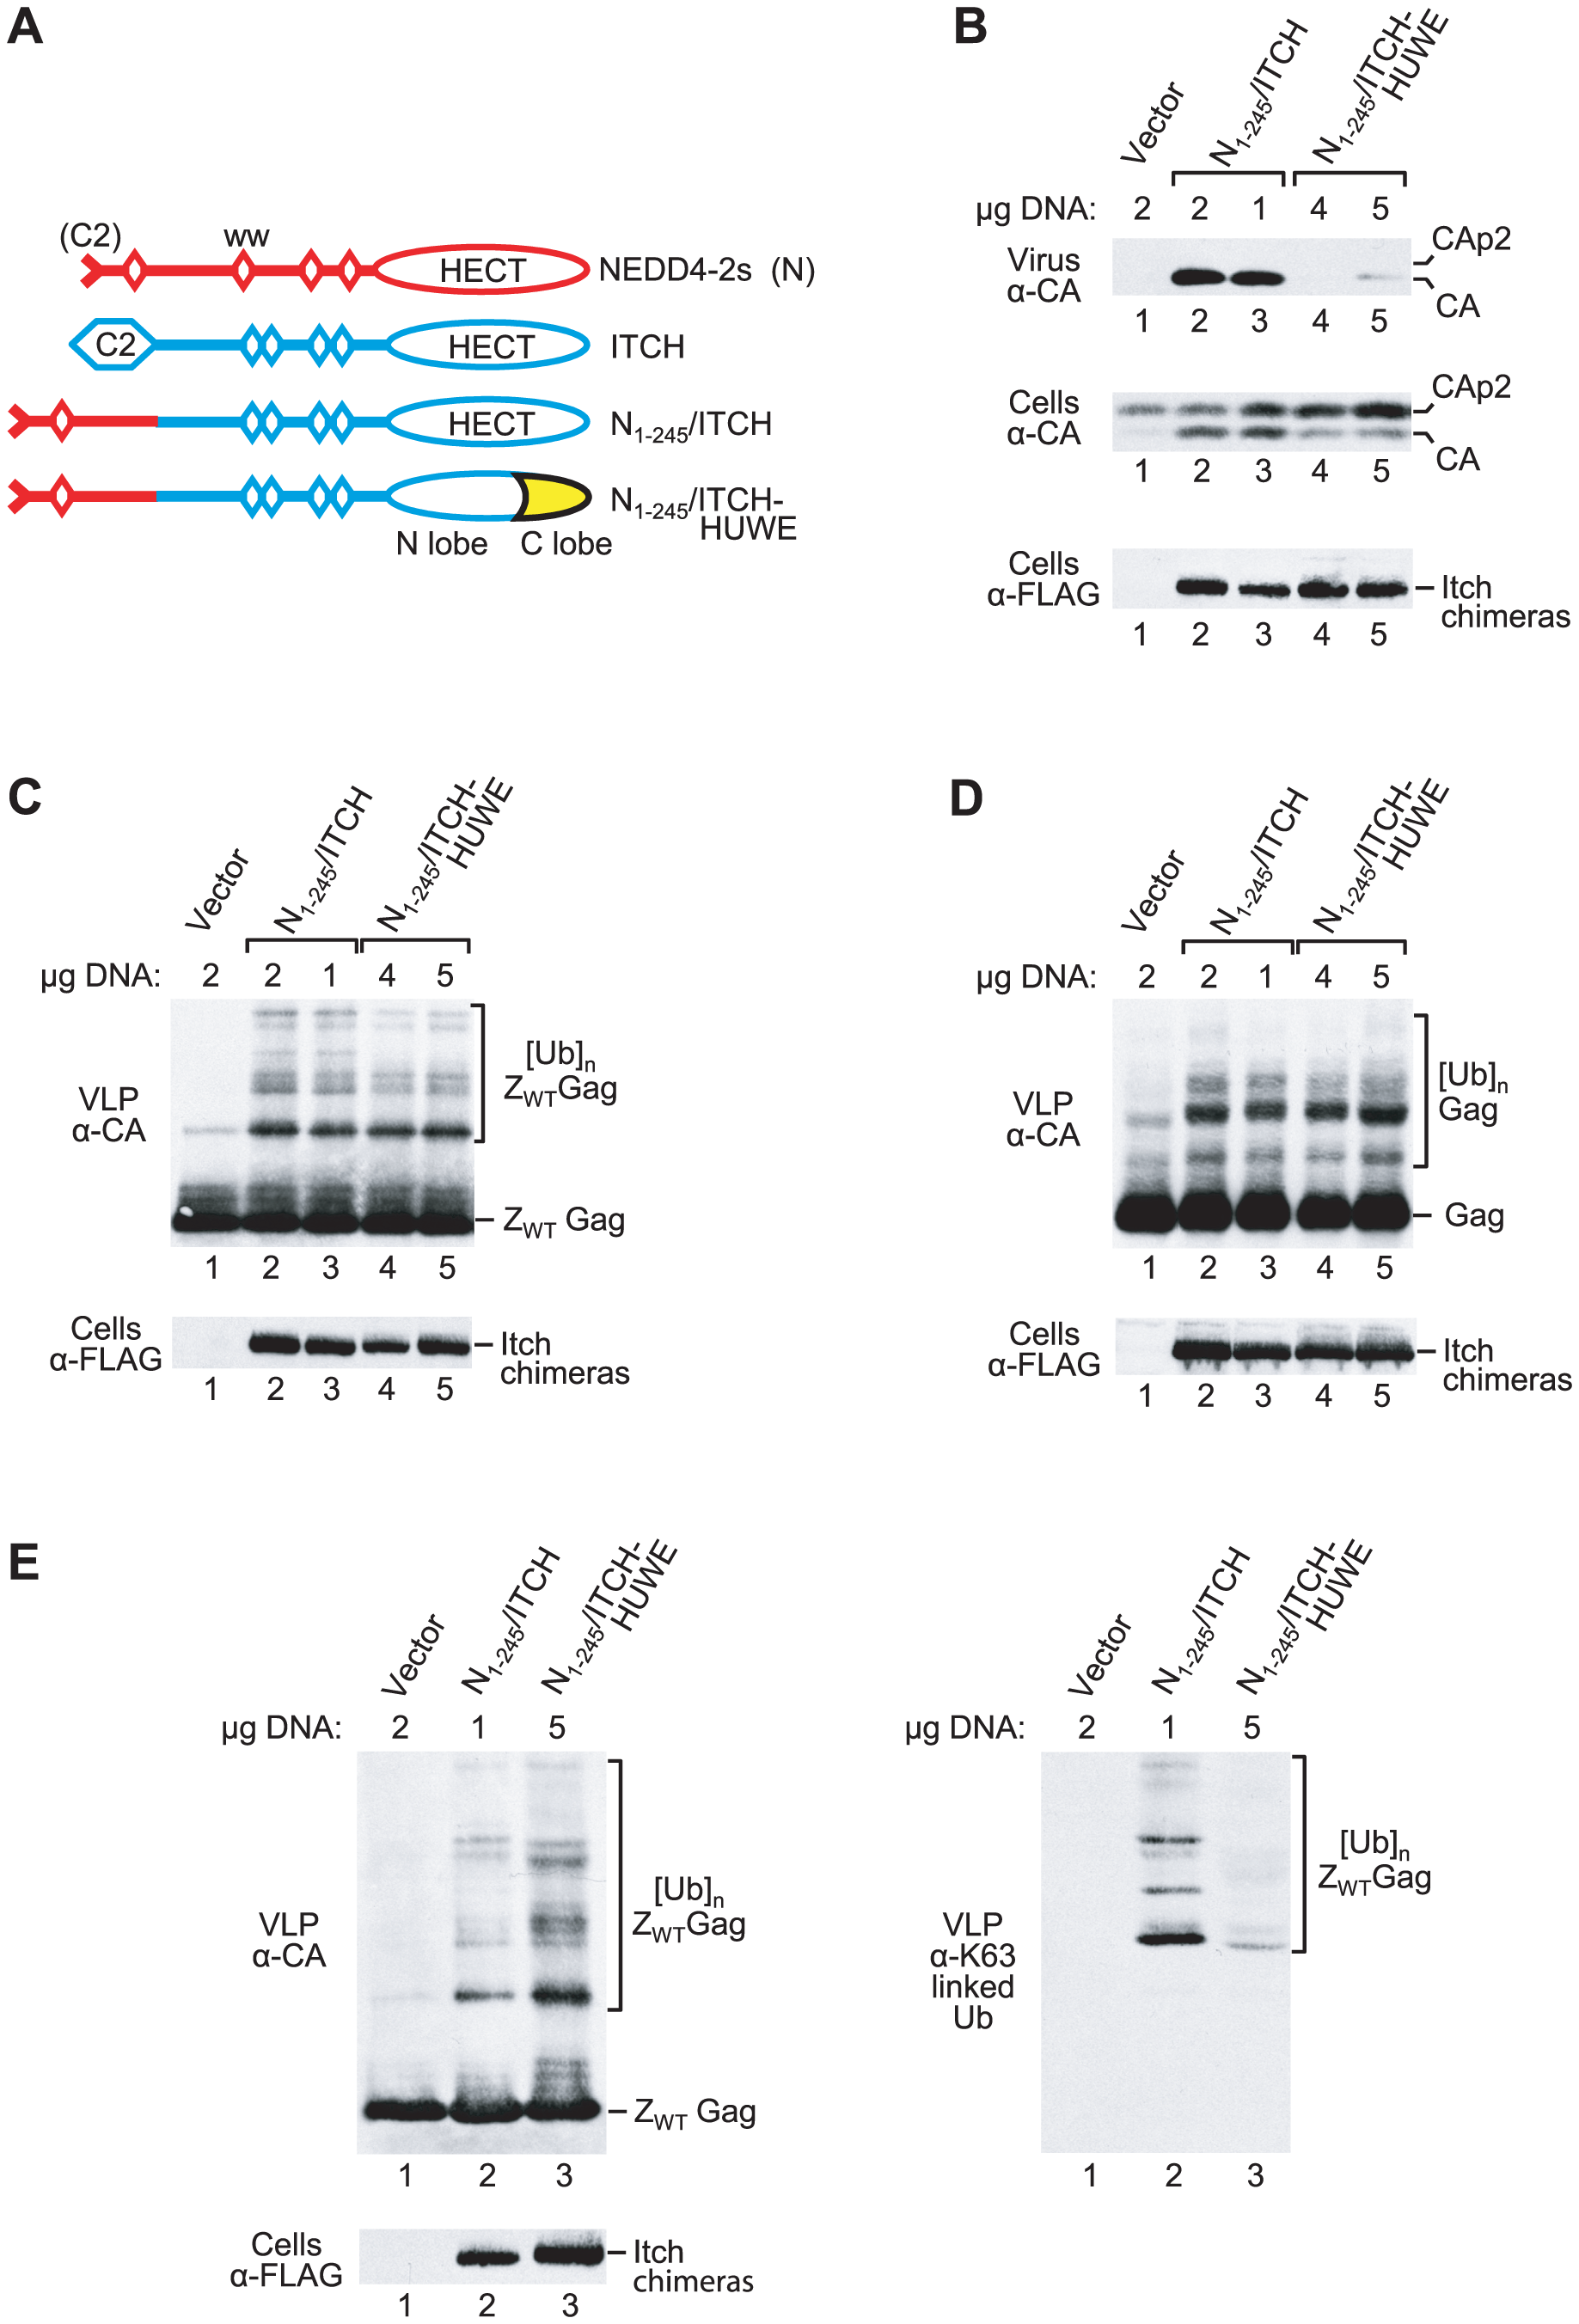 Rescue of HIV-1 release correlates with chain type specificity.